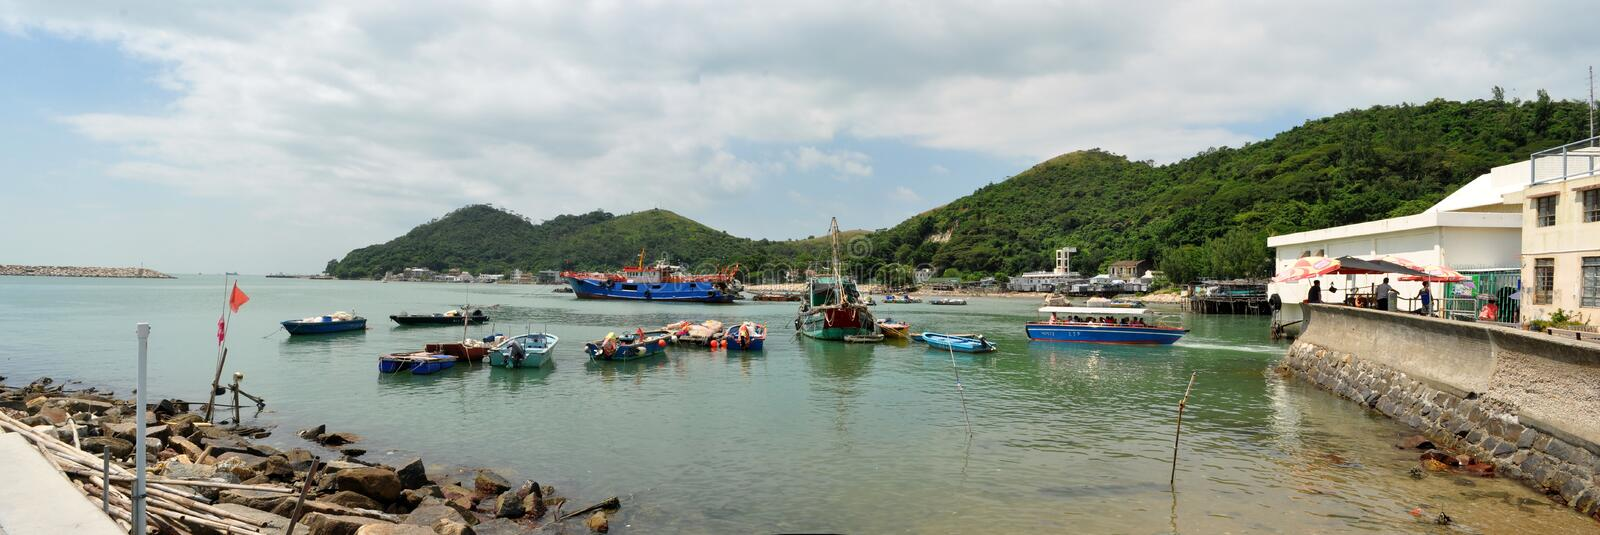 Fishing Boats In Tai O Fishing Village Hong Kong stock image